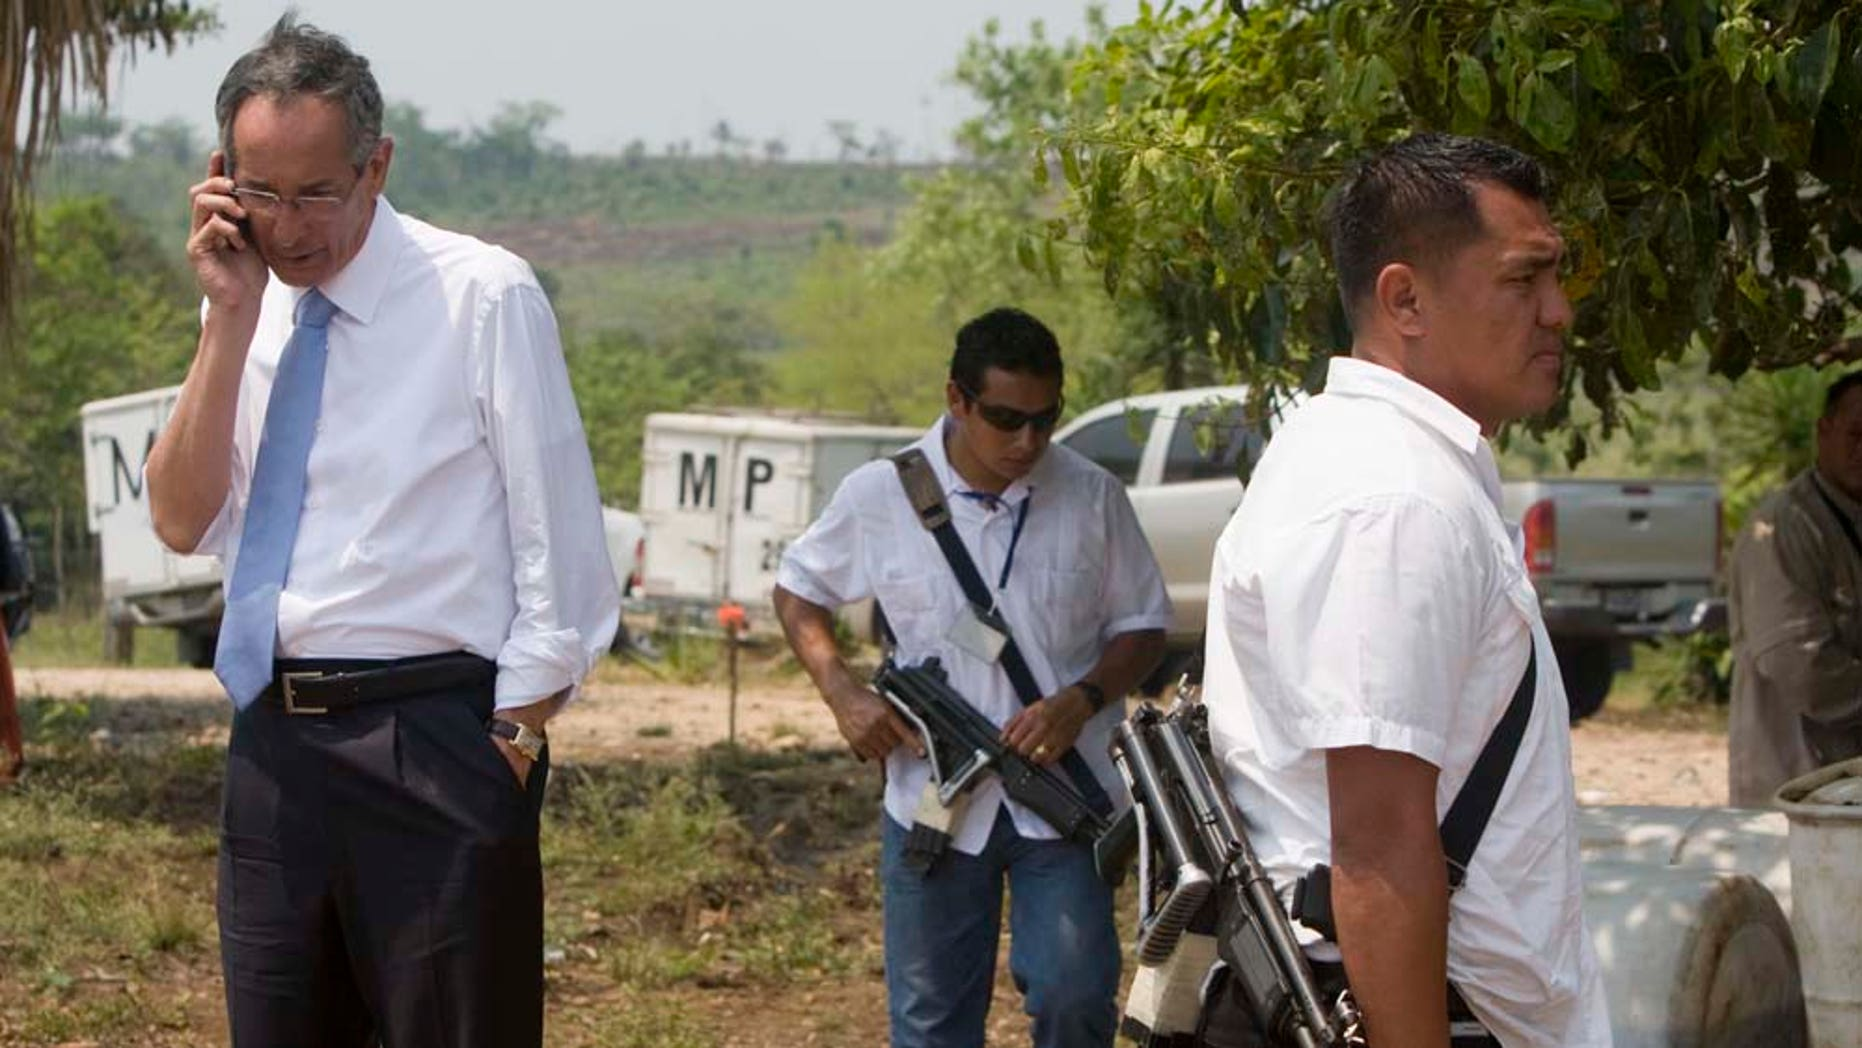 Guatemala's President Alvaro Colom, left, talks on a mobile phone while inspecting the site of a massacre at a local ranch in the hamlet Caserio La Bomba, in La Libertad, northern Guatemala, Monday, May 16, 2011. Assailants killed Sunday at least 29 people, including two children and two women, decapitating most of the victims on the ranch near the Mexico border, according to National Civil Police spokesman Donald Gonzalez. (AP Photo/Moises Castillo)